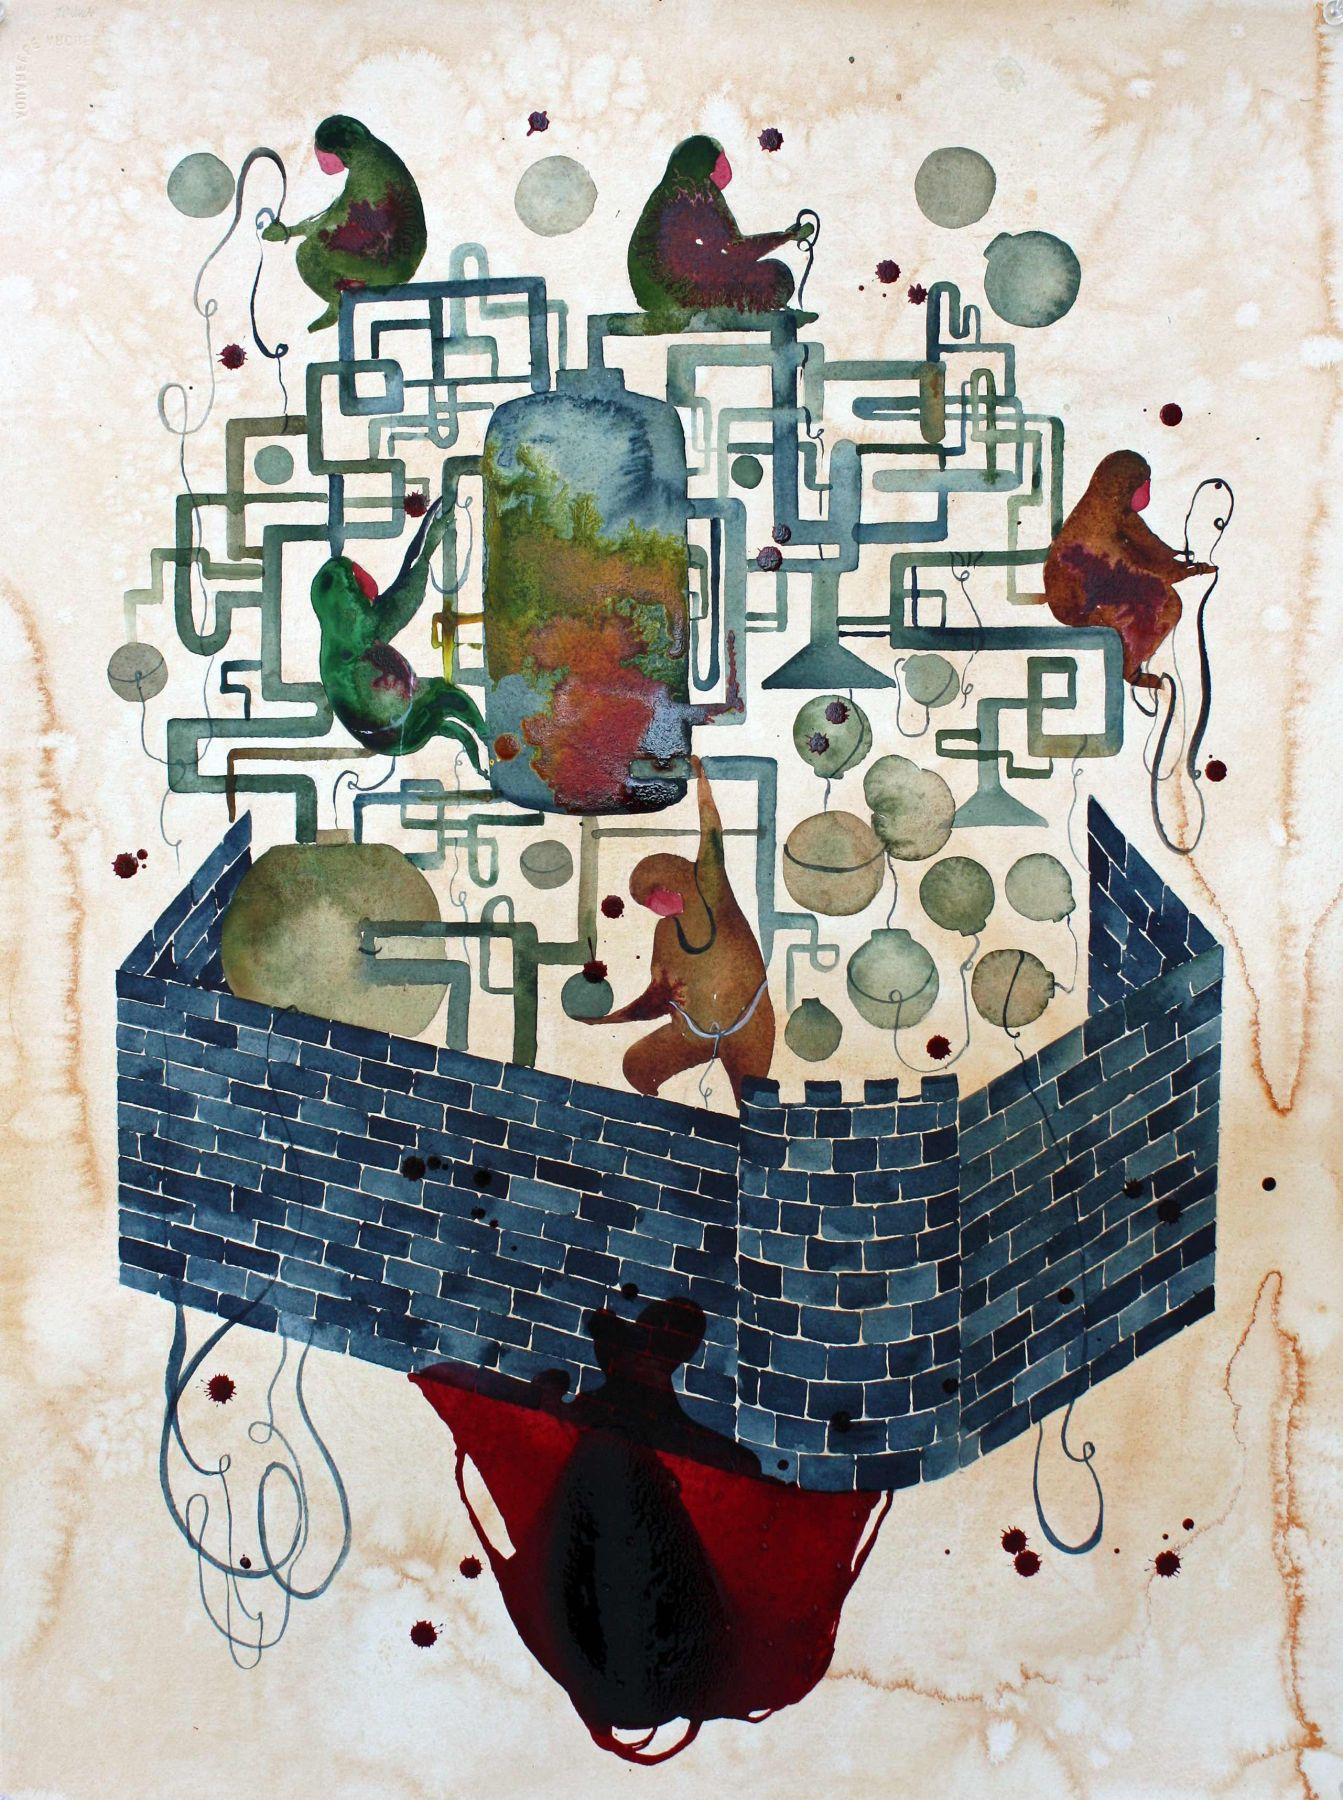 Shiva Ahmadi, Brick Wall, 2017, Watercolor and ink on paper, 30 x 22 in